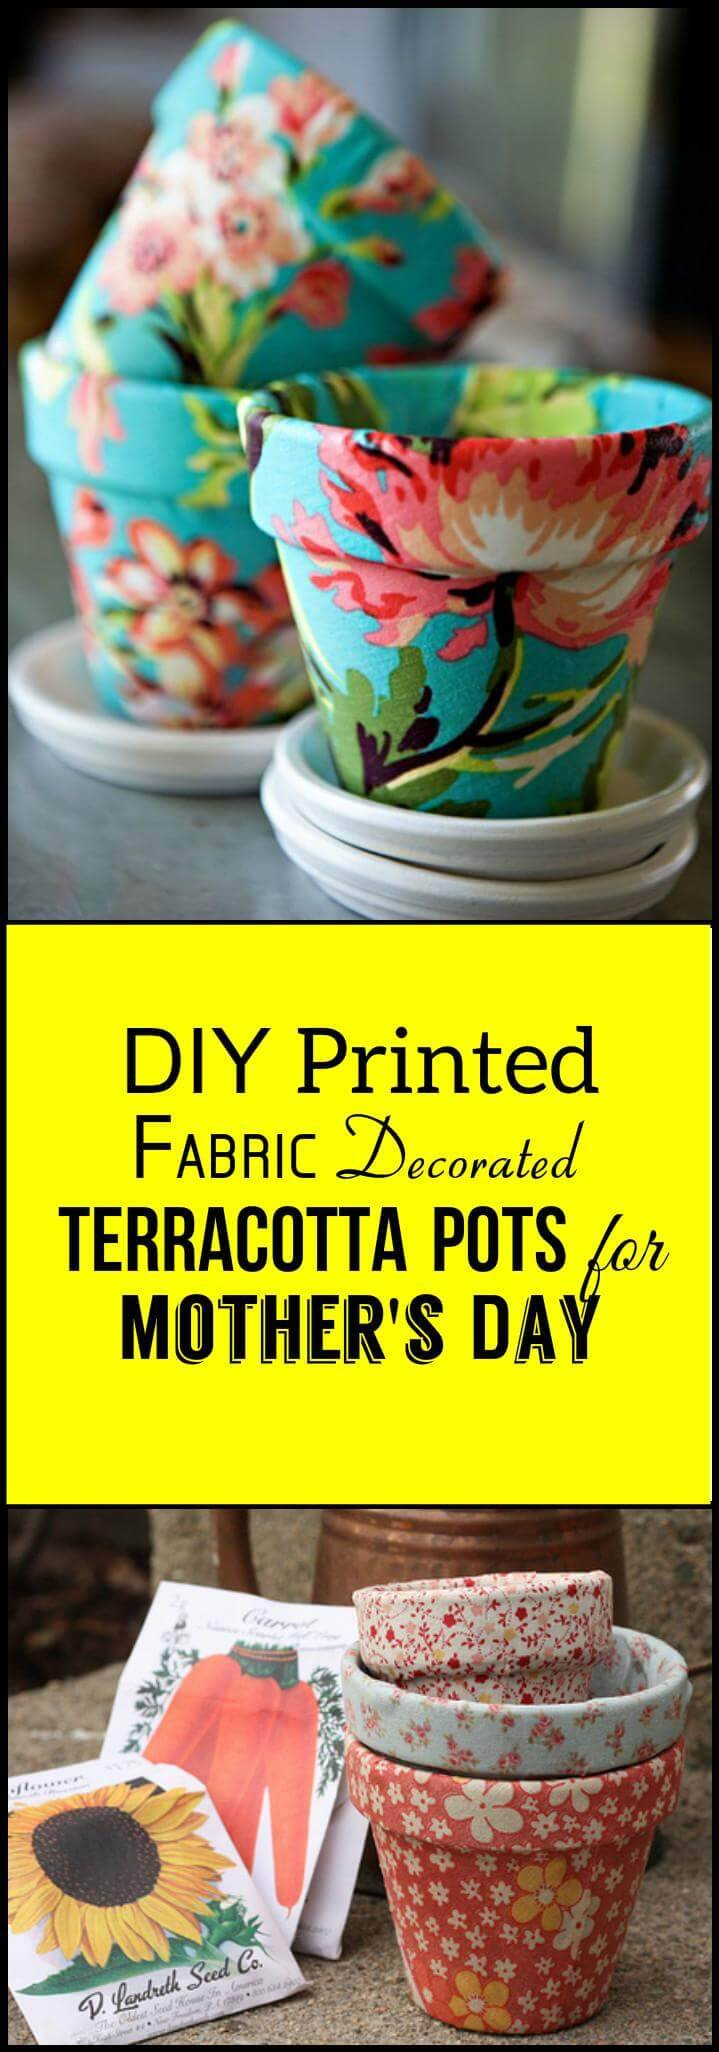 easy printed fabric decorated terracotta pots for Mother's Day